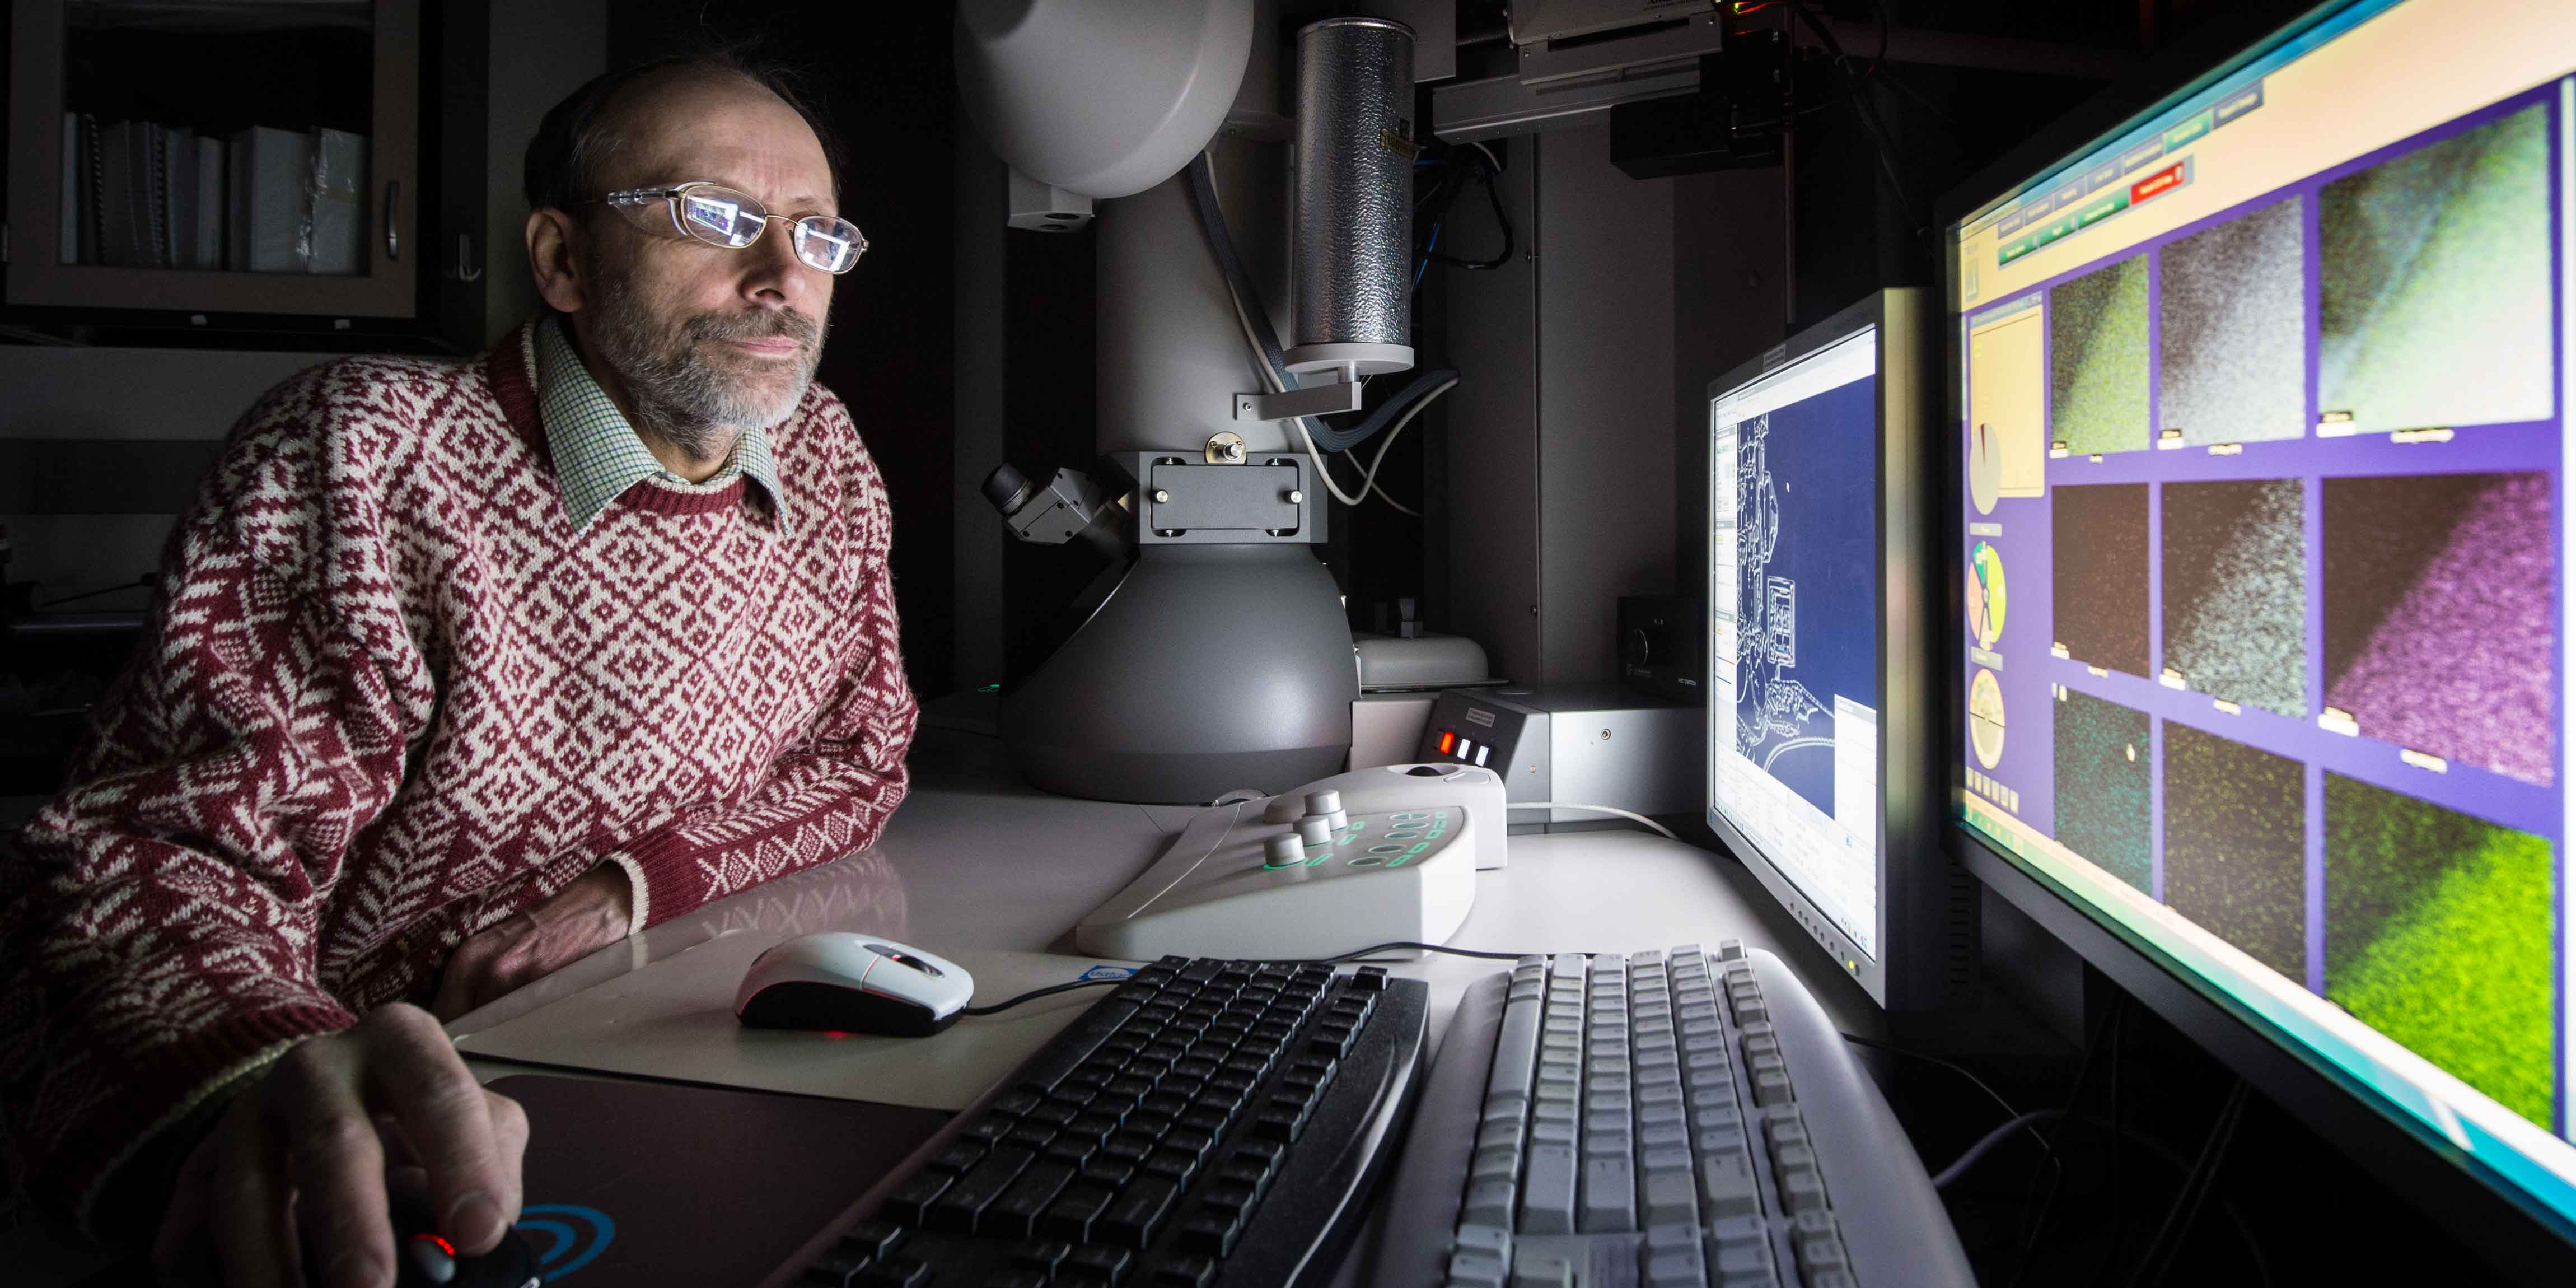 A man looks at images through a scanning transmission electronic microscope.